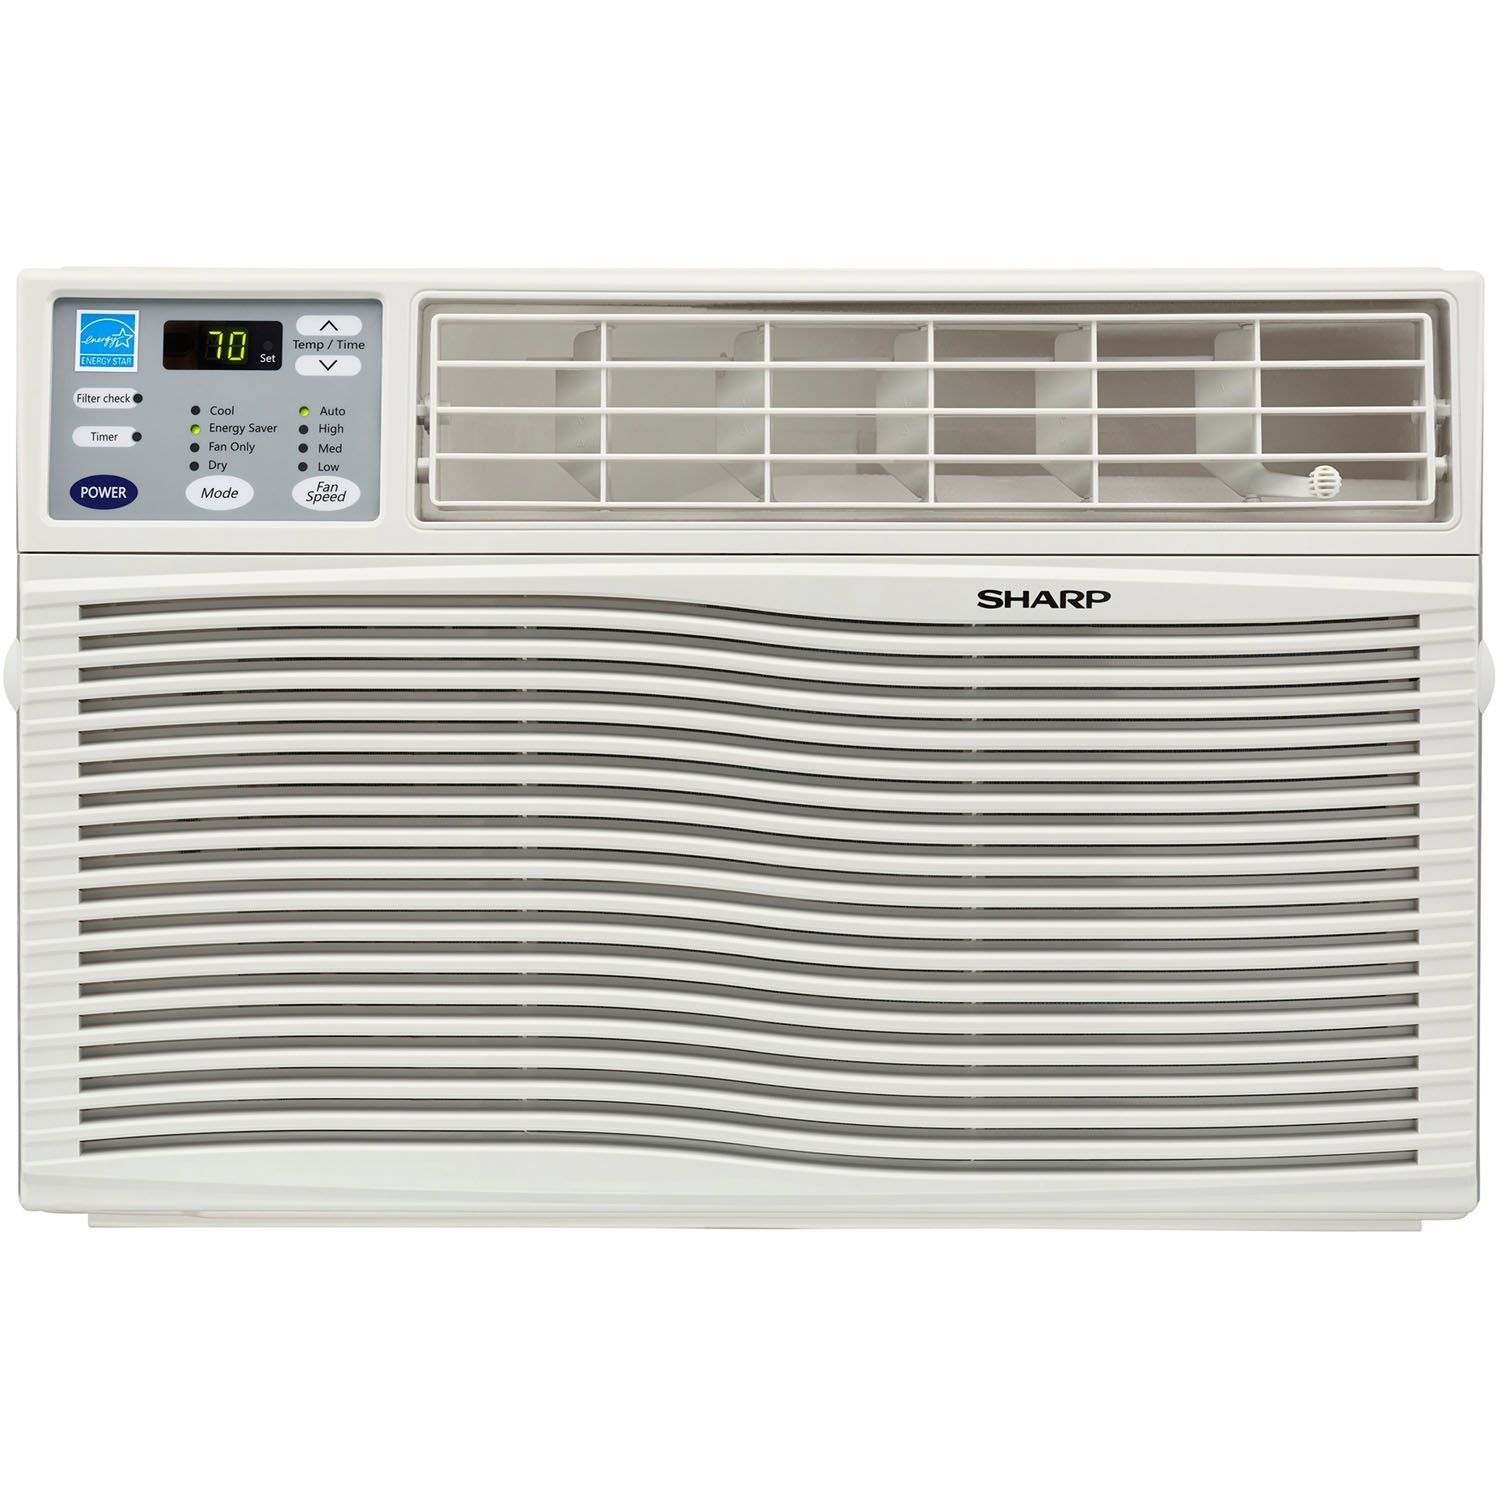 Fairly High Rating Cools Up To 350 Sq Ft 220 Amazon Com Sharp Afq80vx Energy Star Window Air Conditioner Room Air Conditioner Portable Air Conditioner